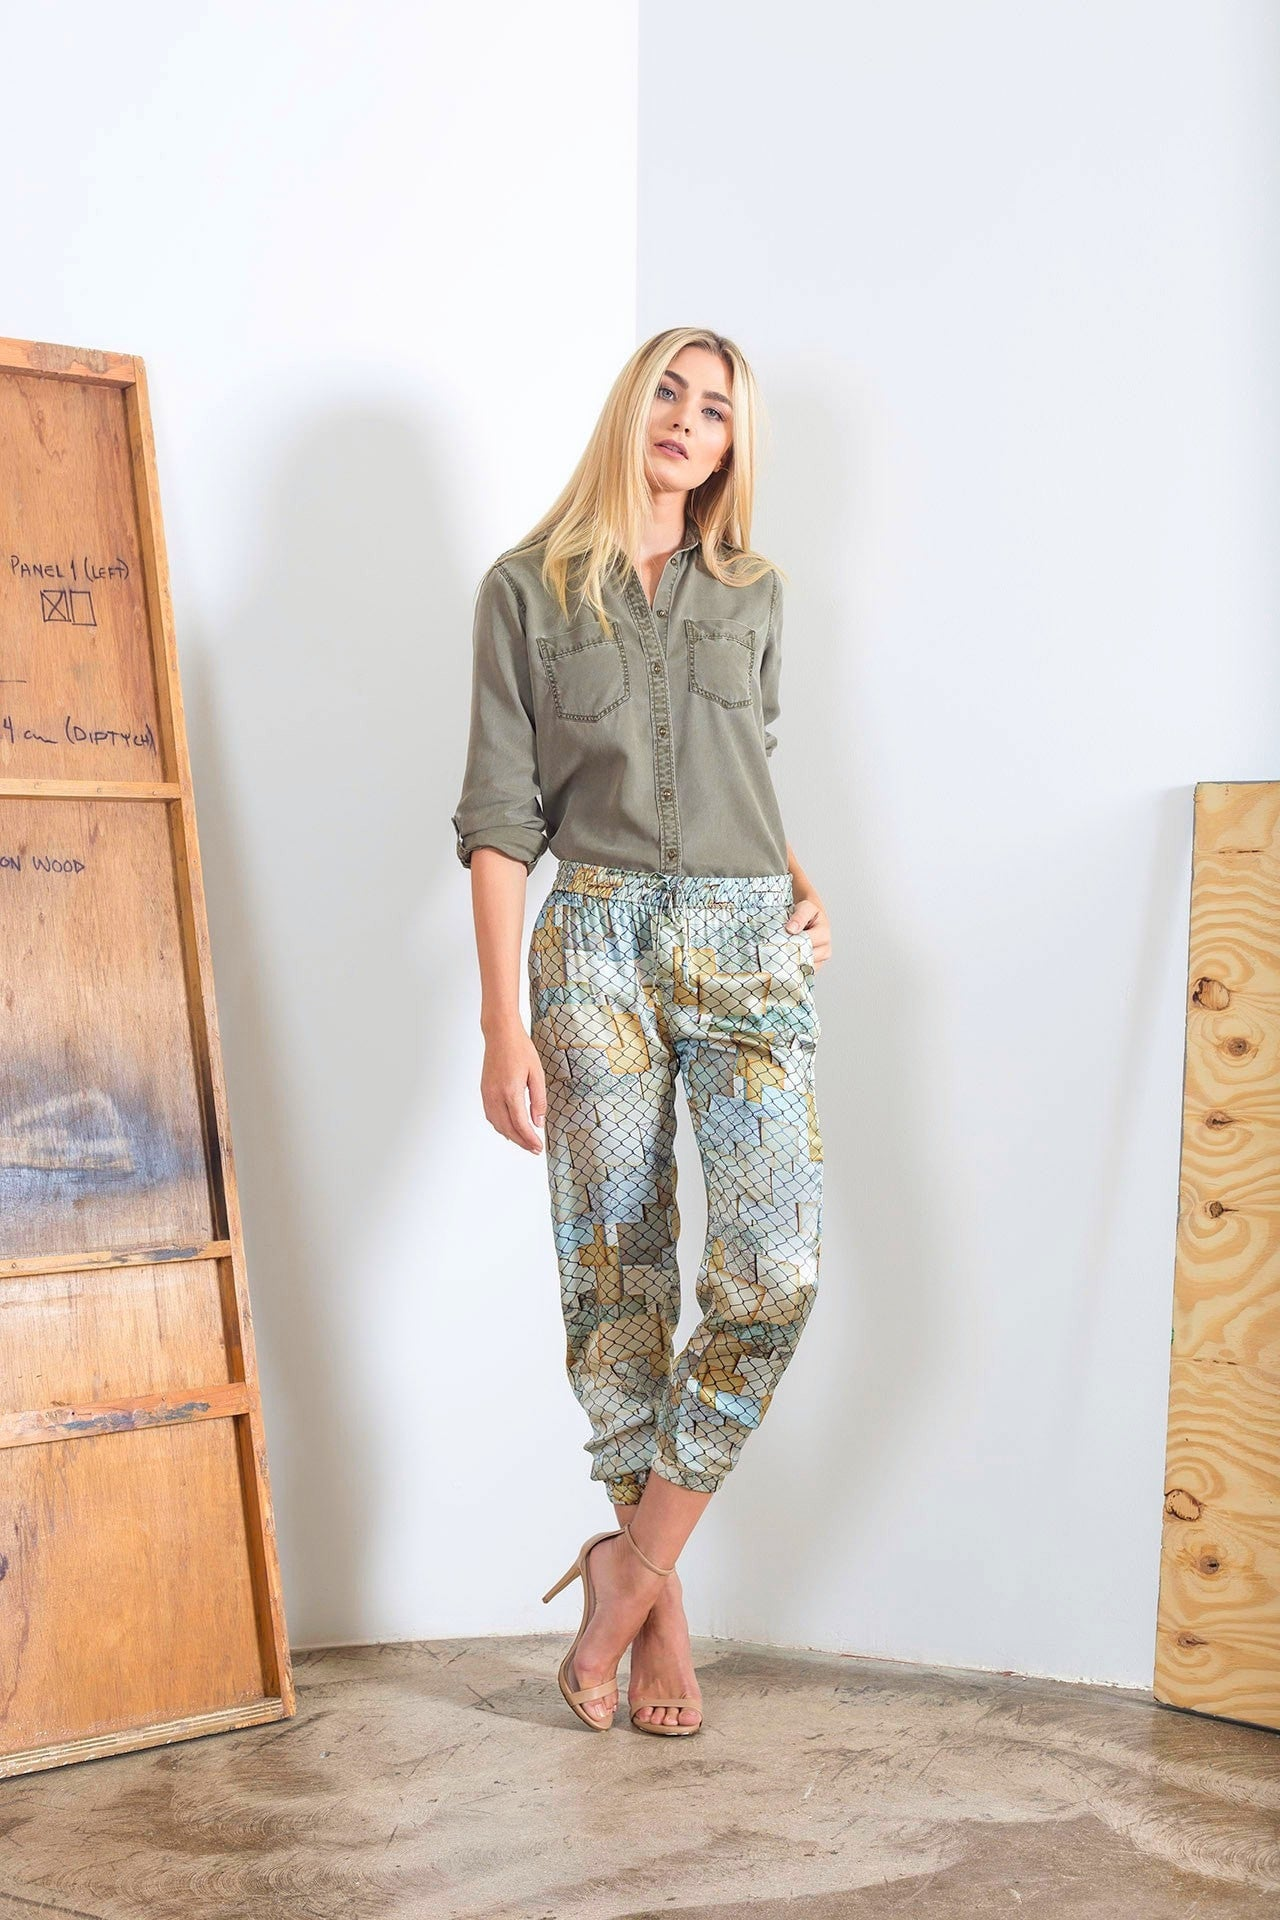 Styled view of silk jogger pants with golden and silver hues designed by artist Mauro Giaconi